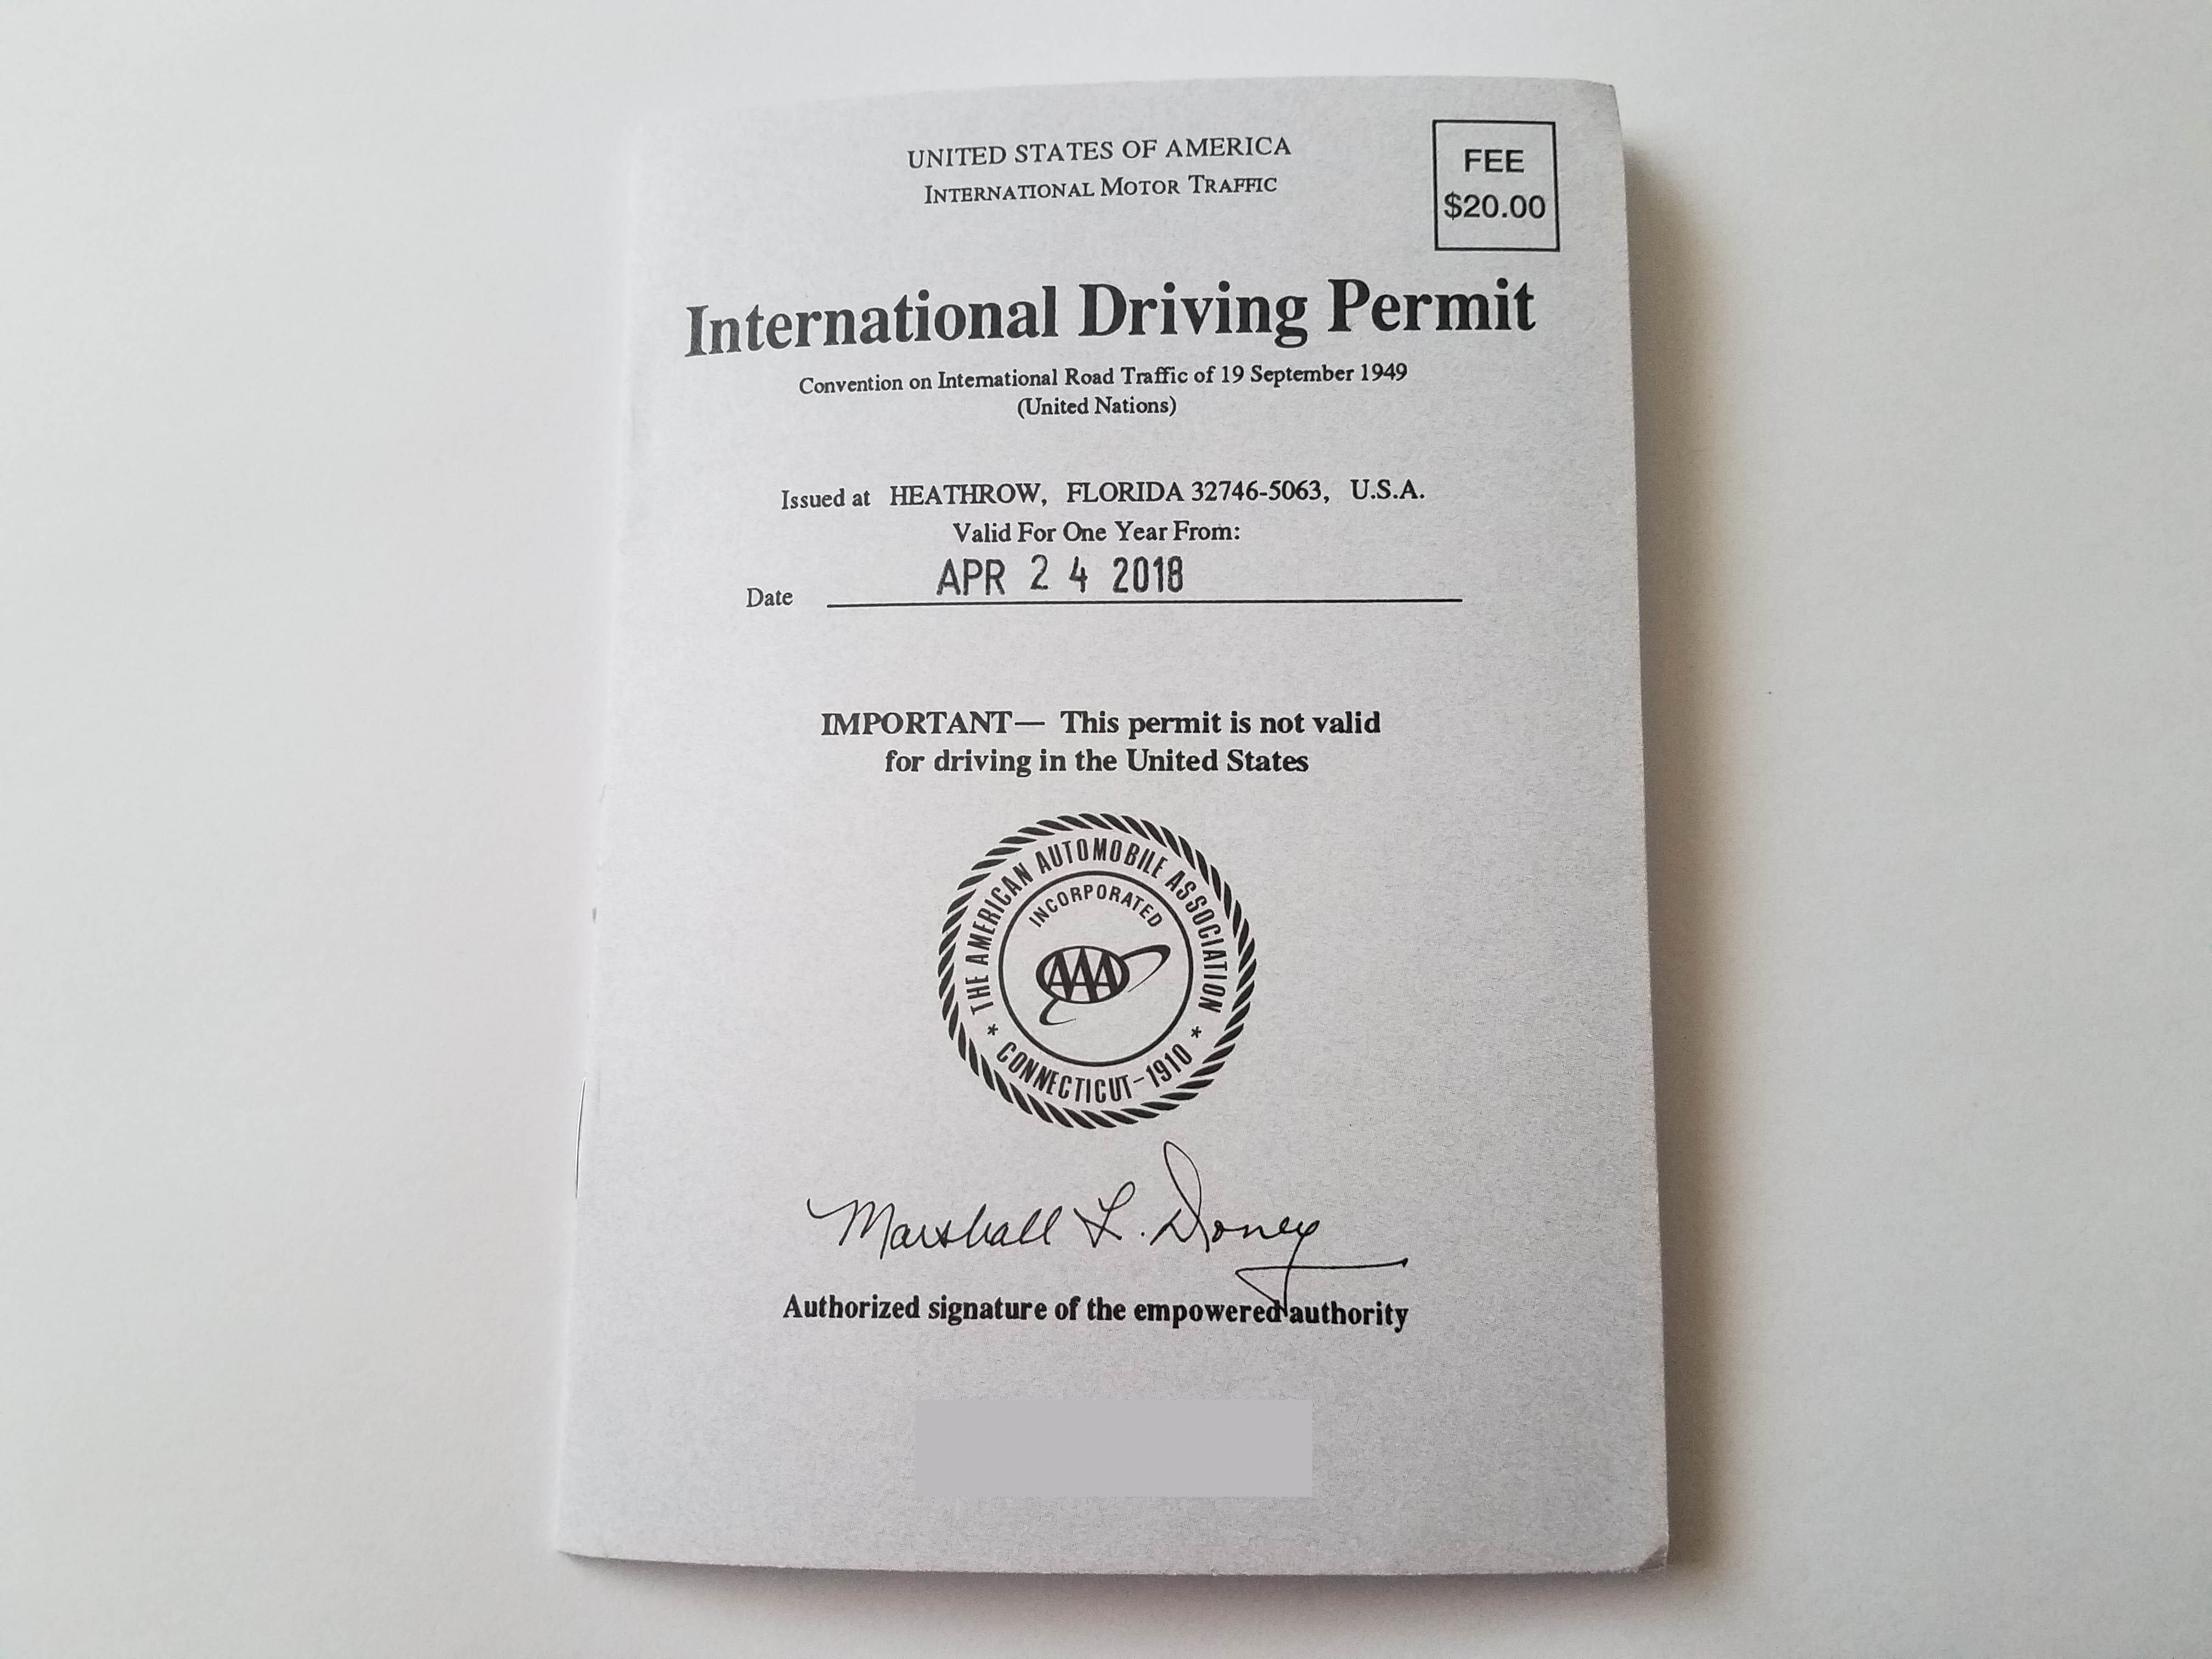 How To Apply For An International Driving Permit